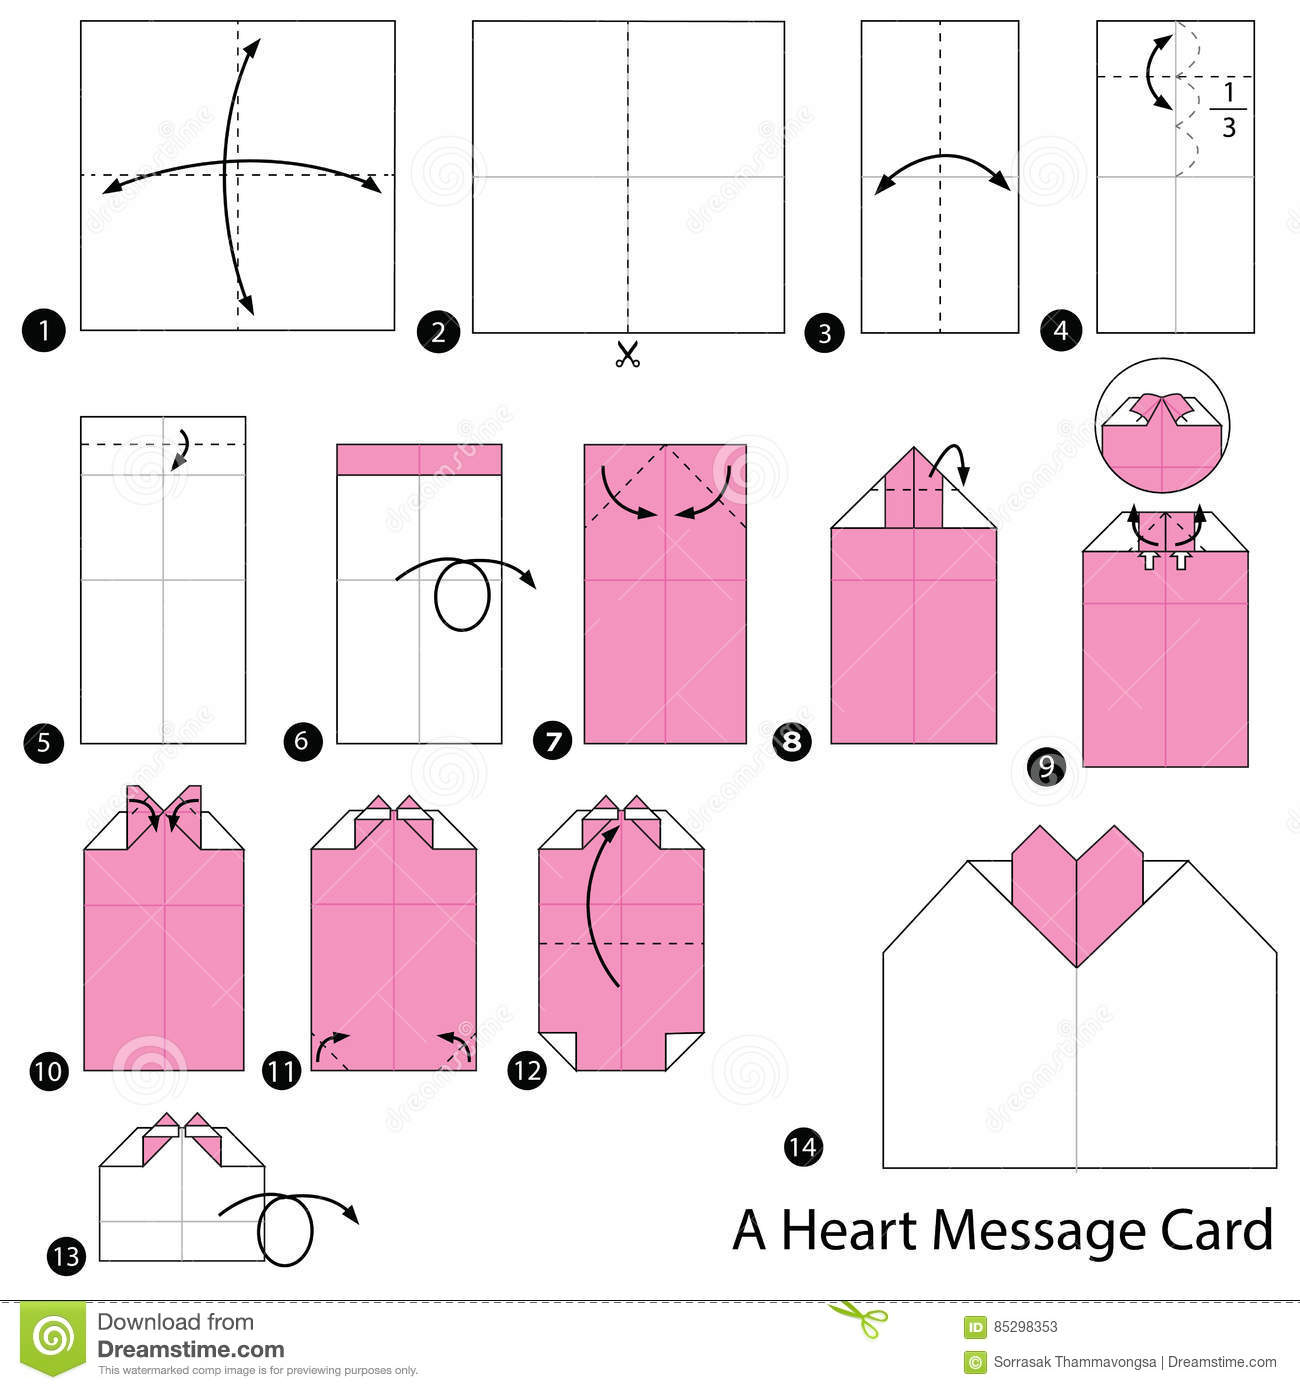 Simple origami heart step by step instructions | Origami easy ... | 1390x1300